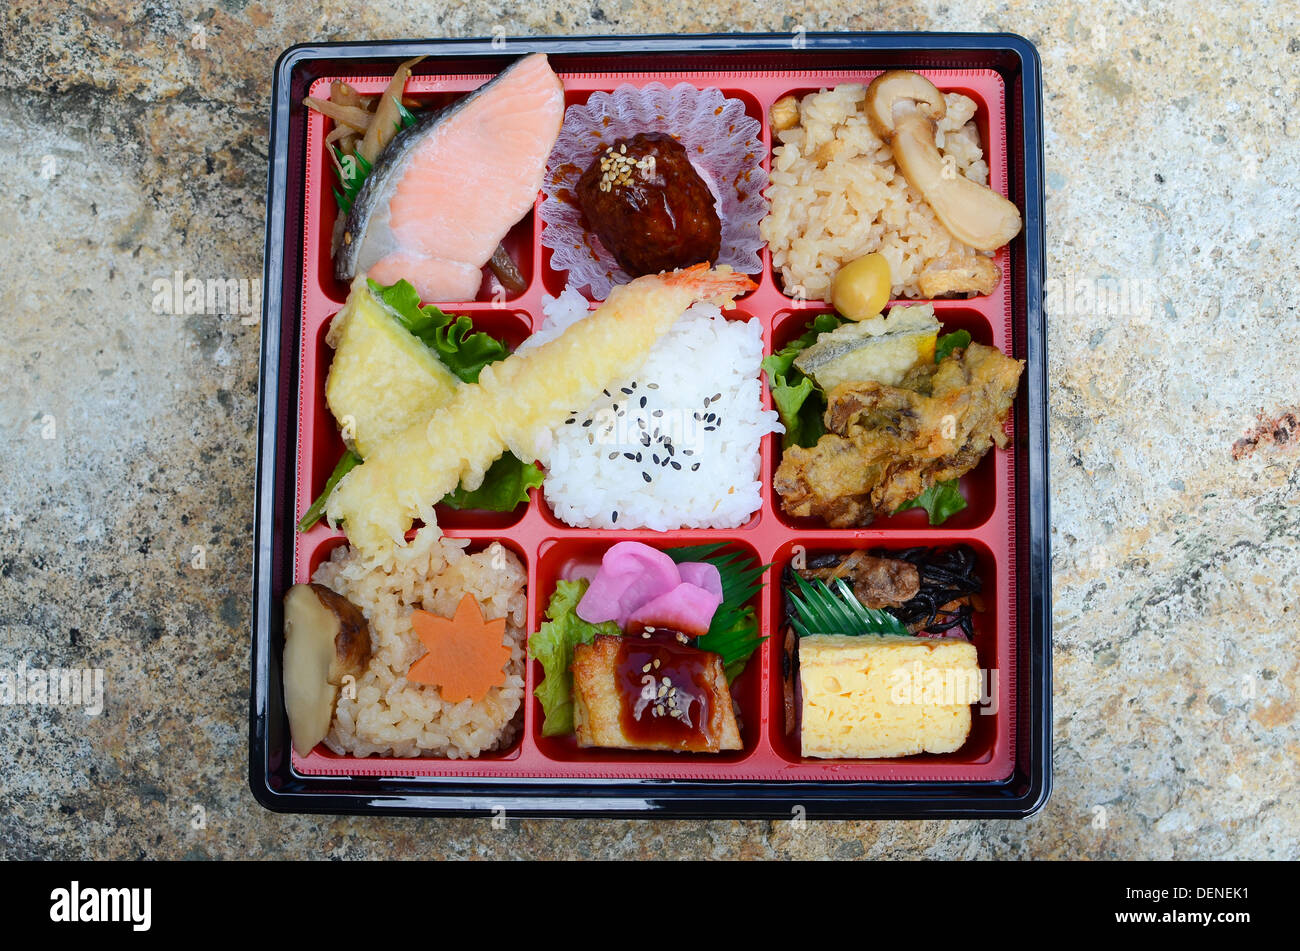 japanese bento lunch box from a supermarket with rice salmon stock photo royalty free image. Black Bedroom Furniture Sets. Home Design Ideas